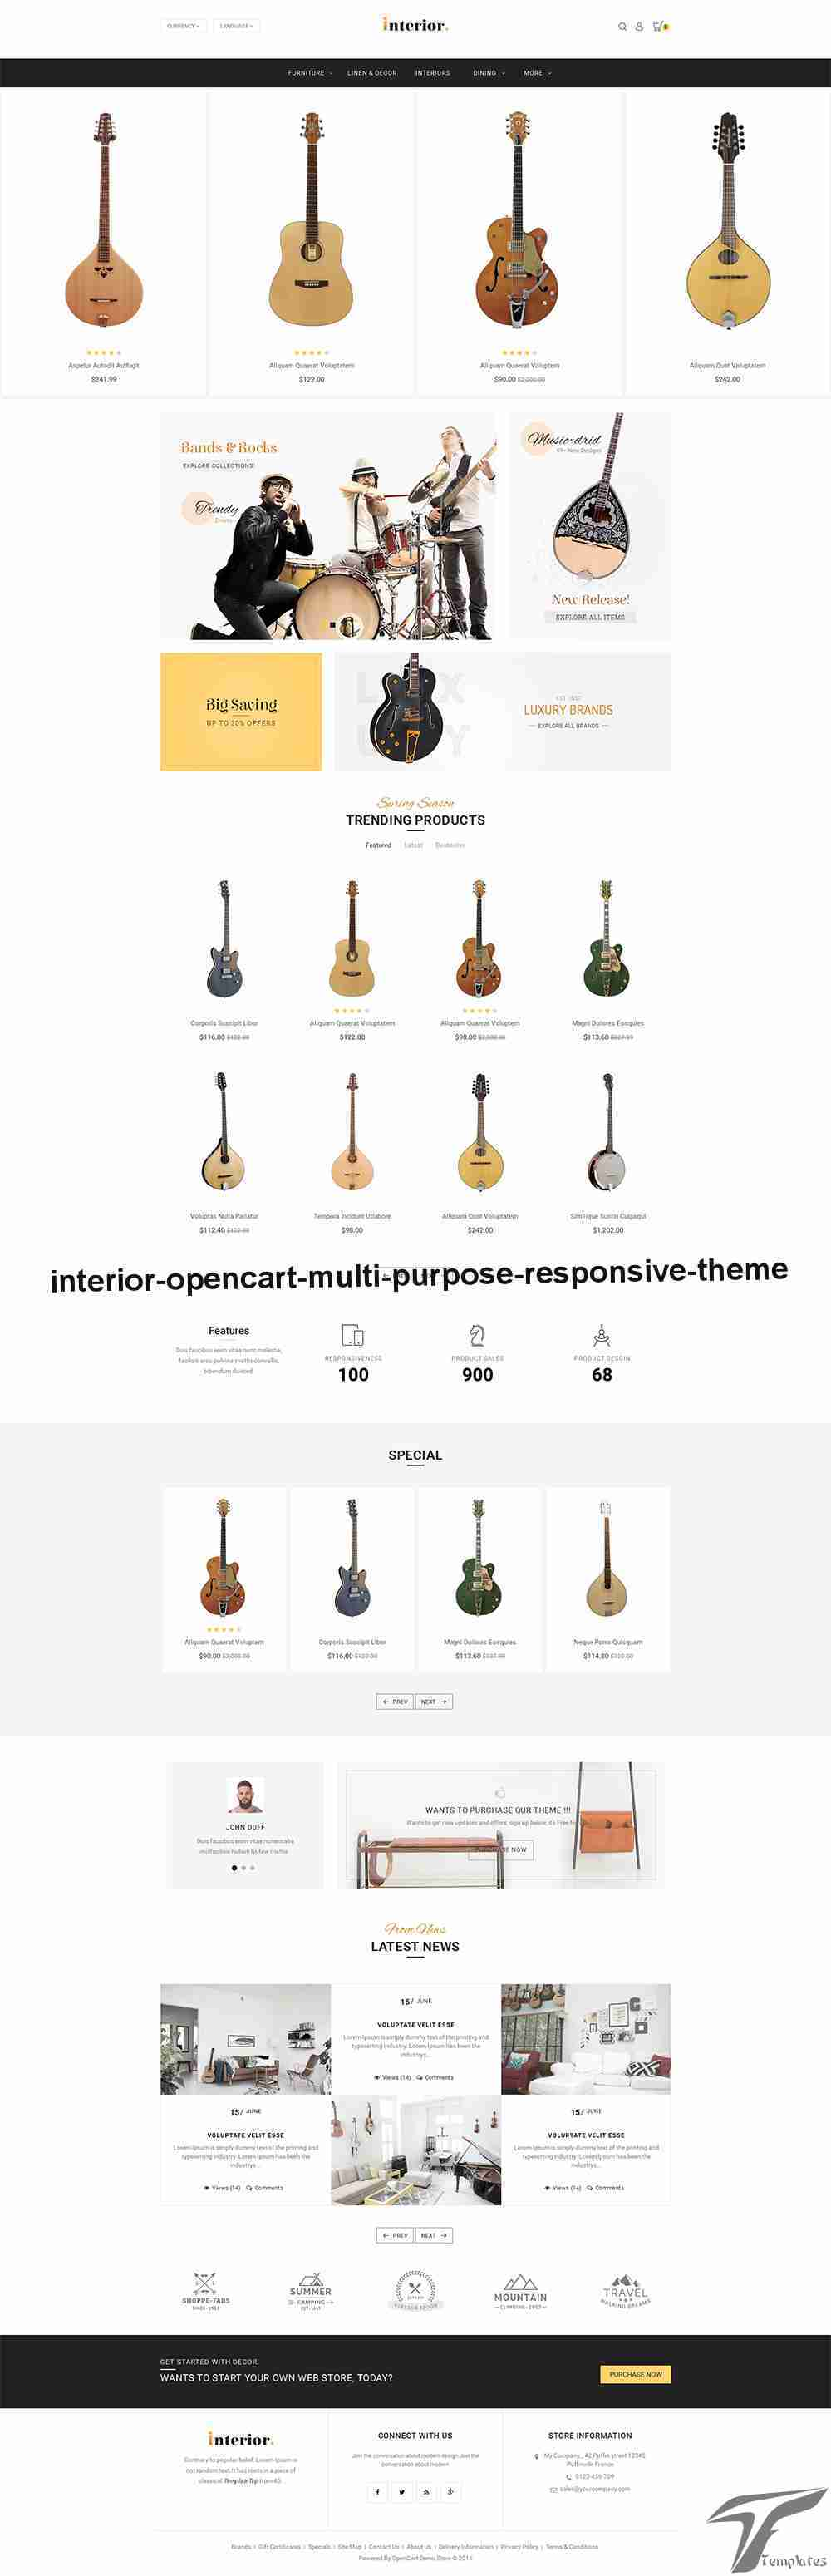 https://images.besthemes.com/images/h1_interior-opencart-multi-purpose-responsive-theme6-_-196005198/05.Guitar-Store.jpg